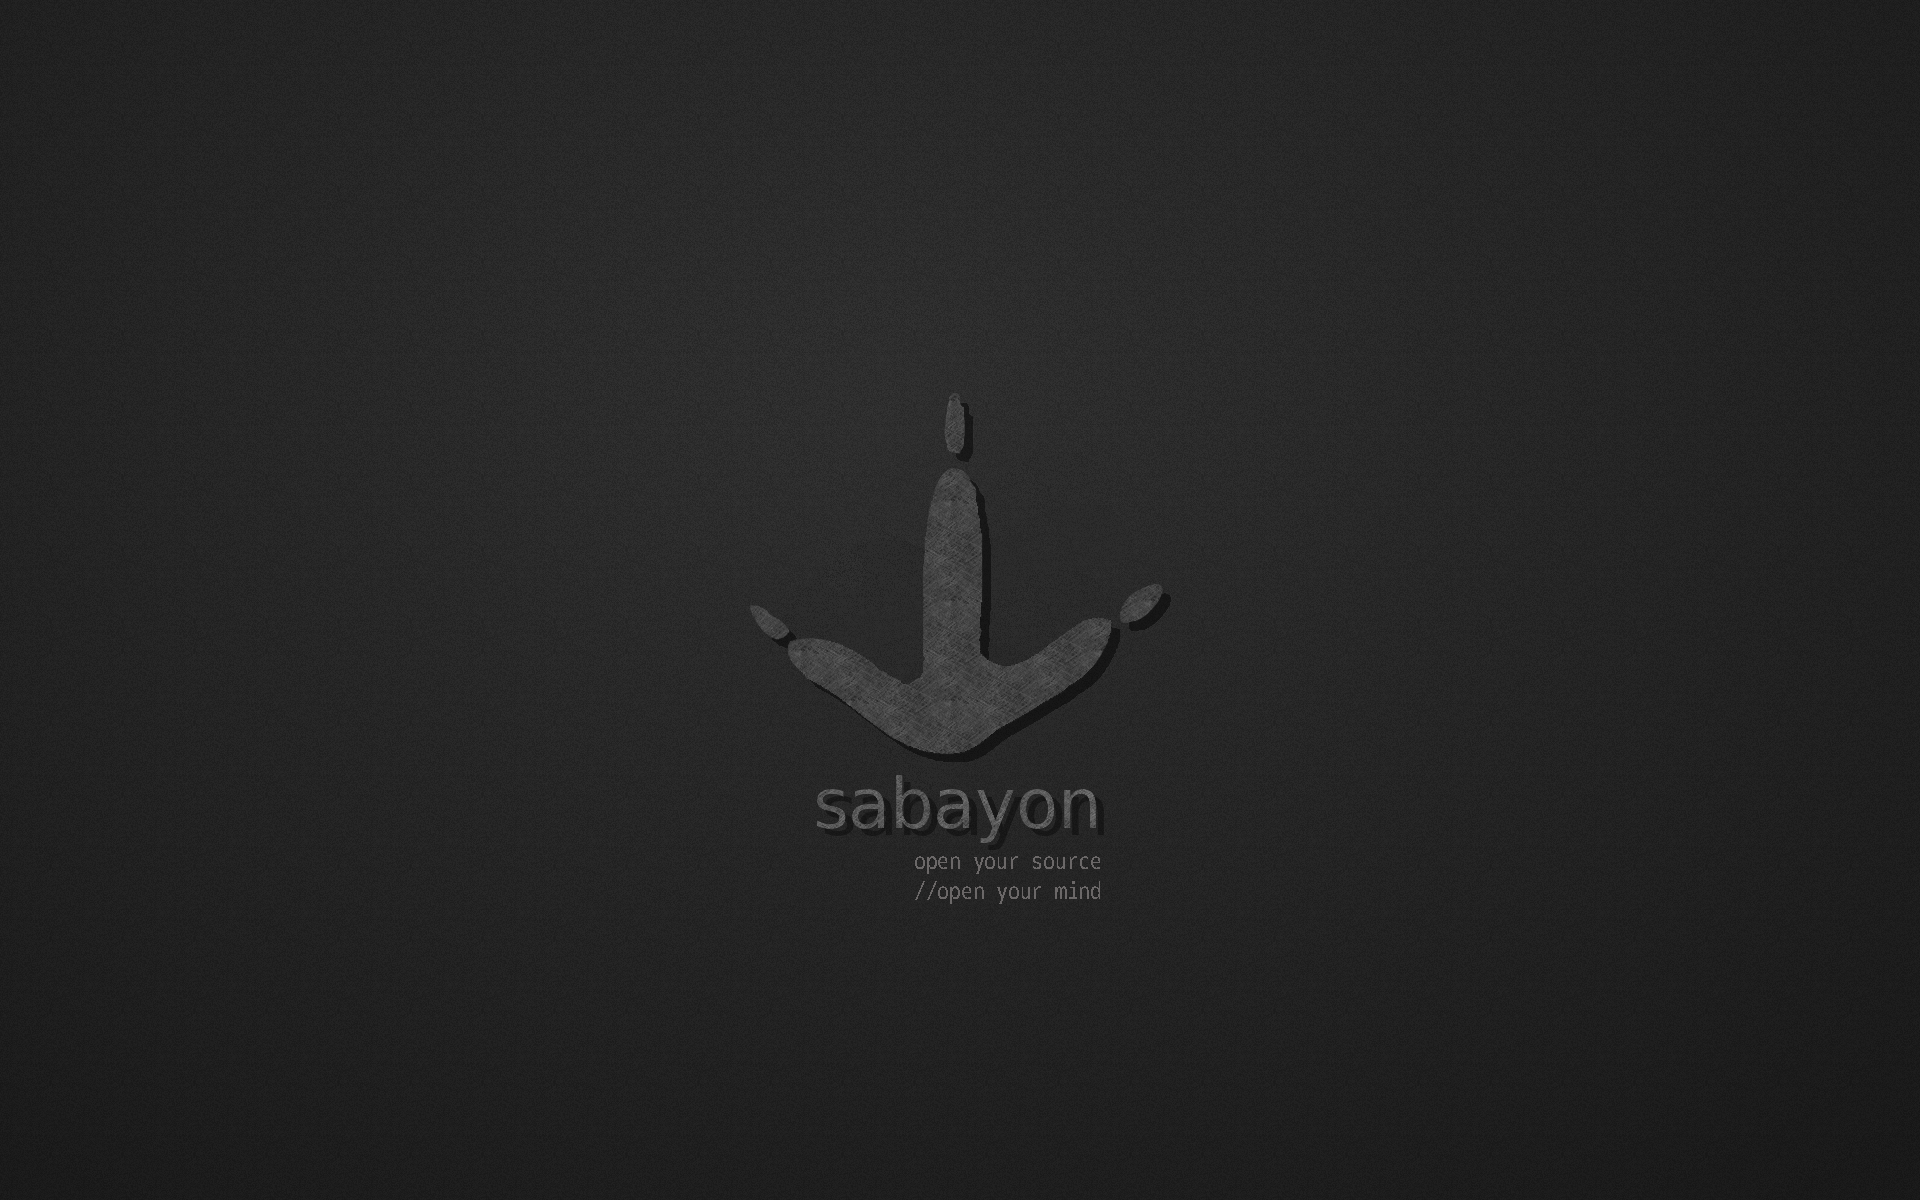 Sabayon Wallpaper by Typograflaw on DeviantArt